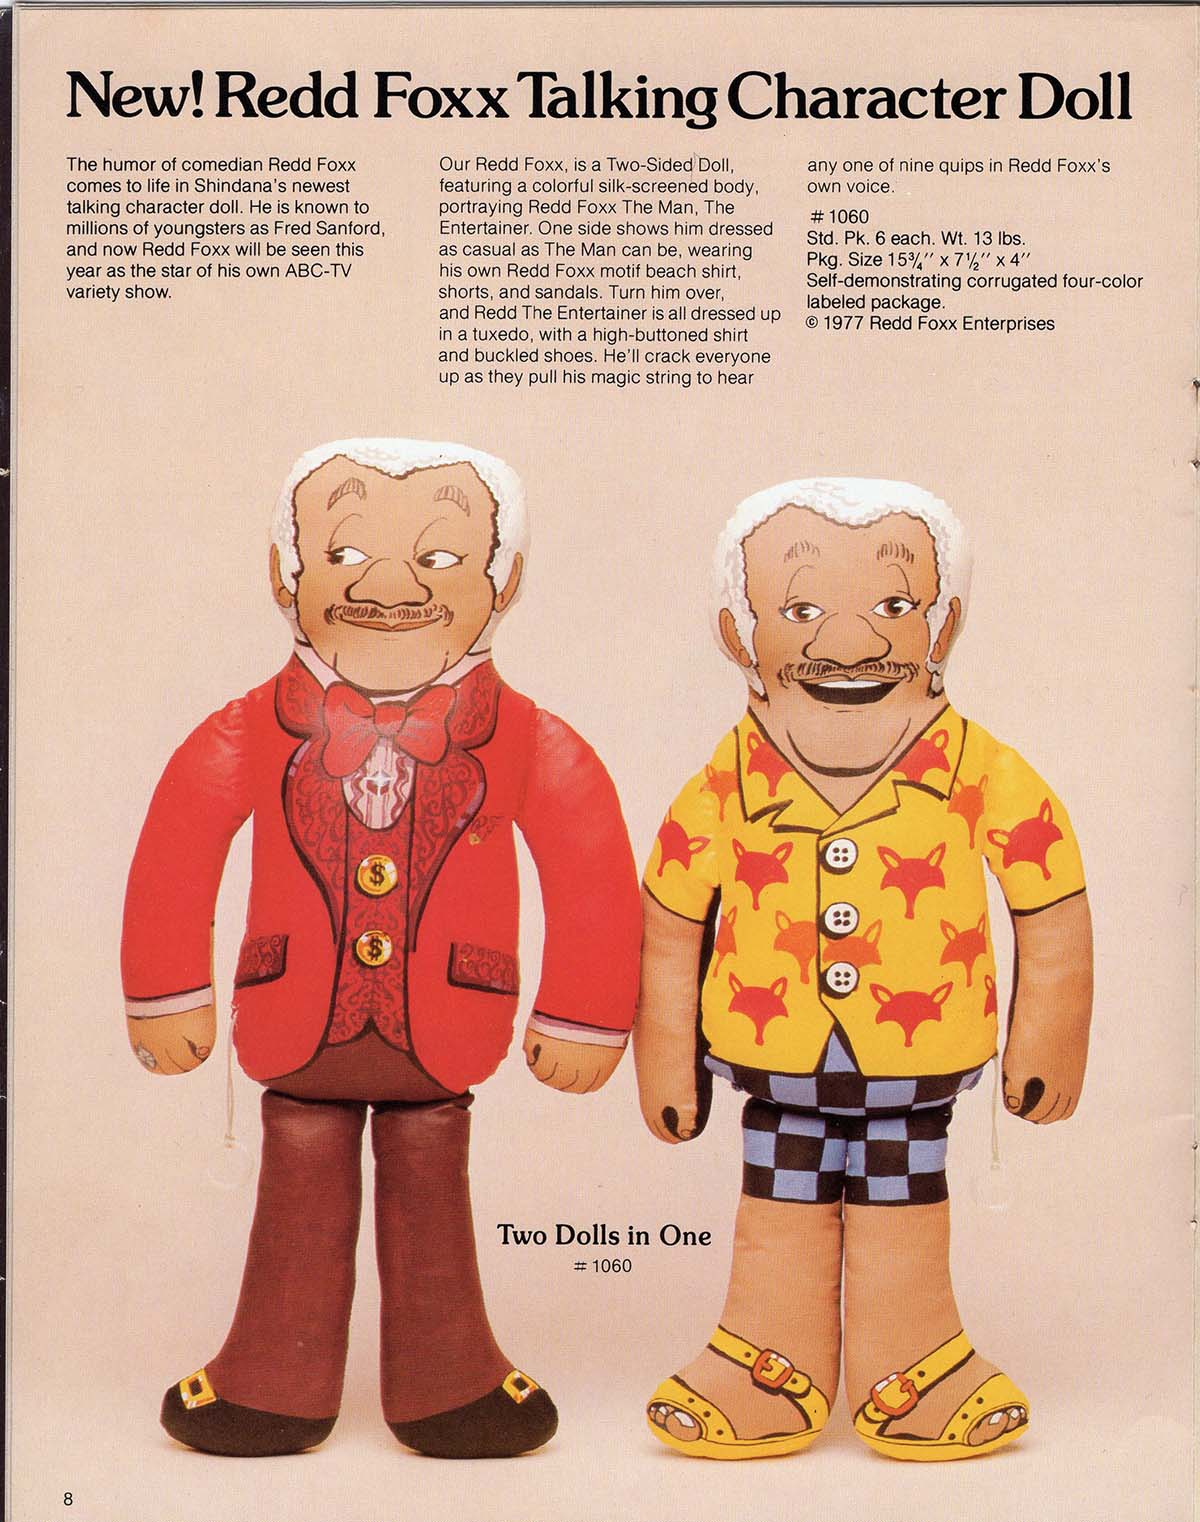 The Redd Foxx Talking Character Doll was modeled after Fred Sanford | Courtesy of Billie Green